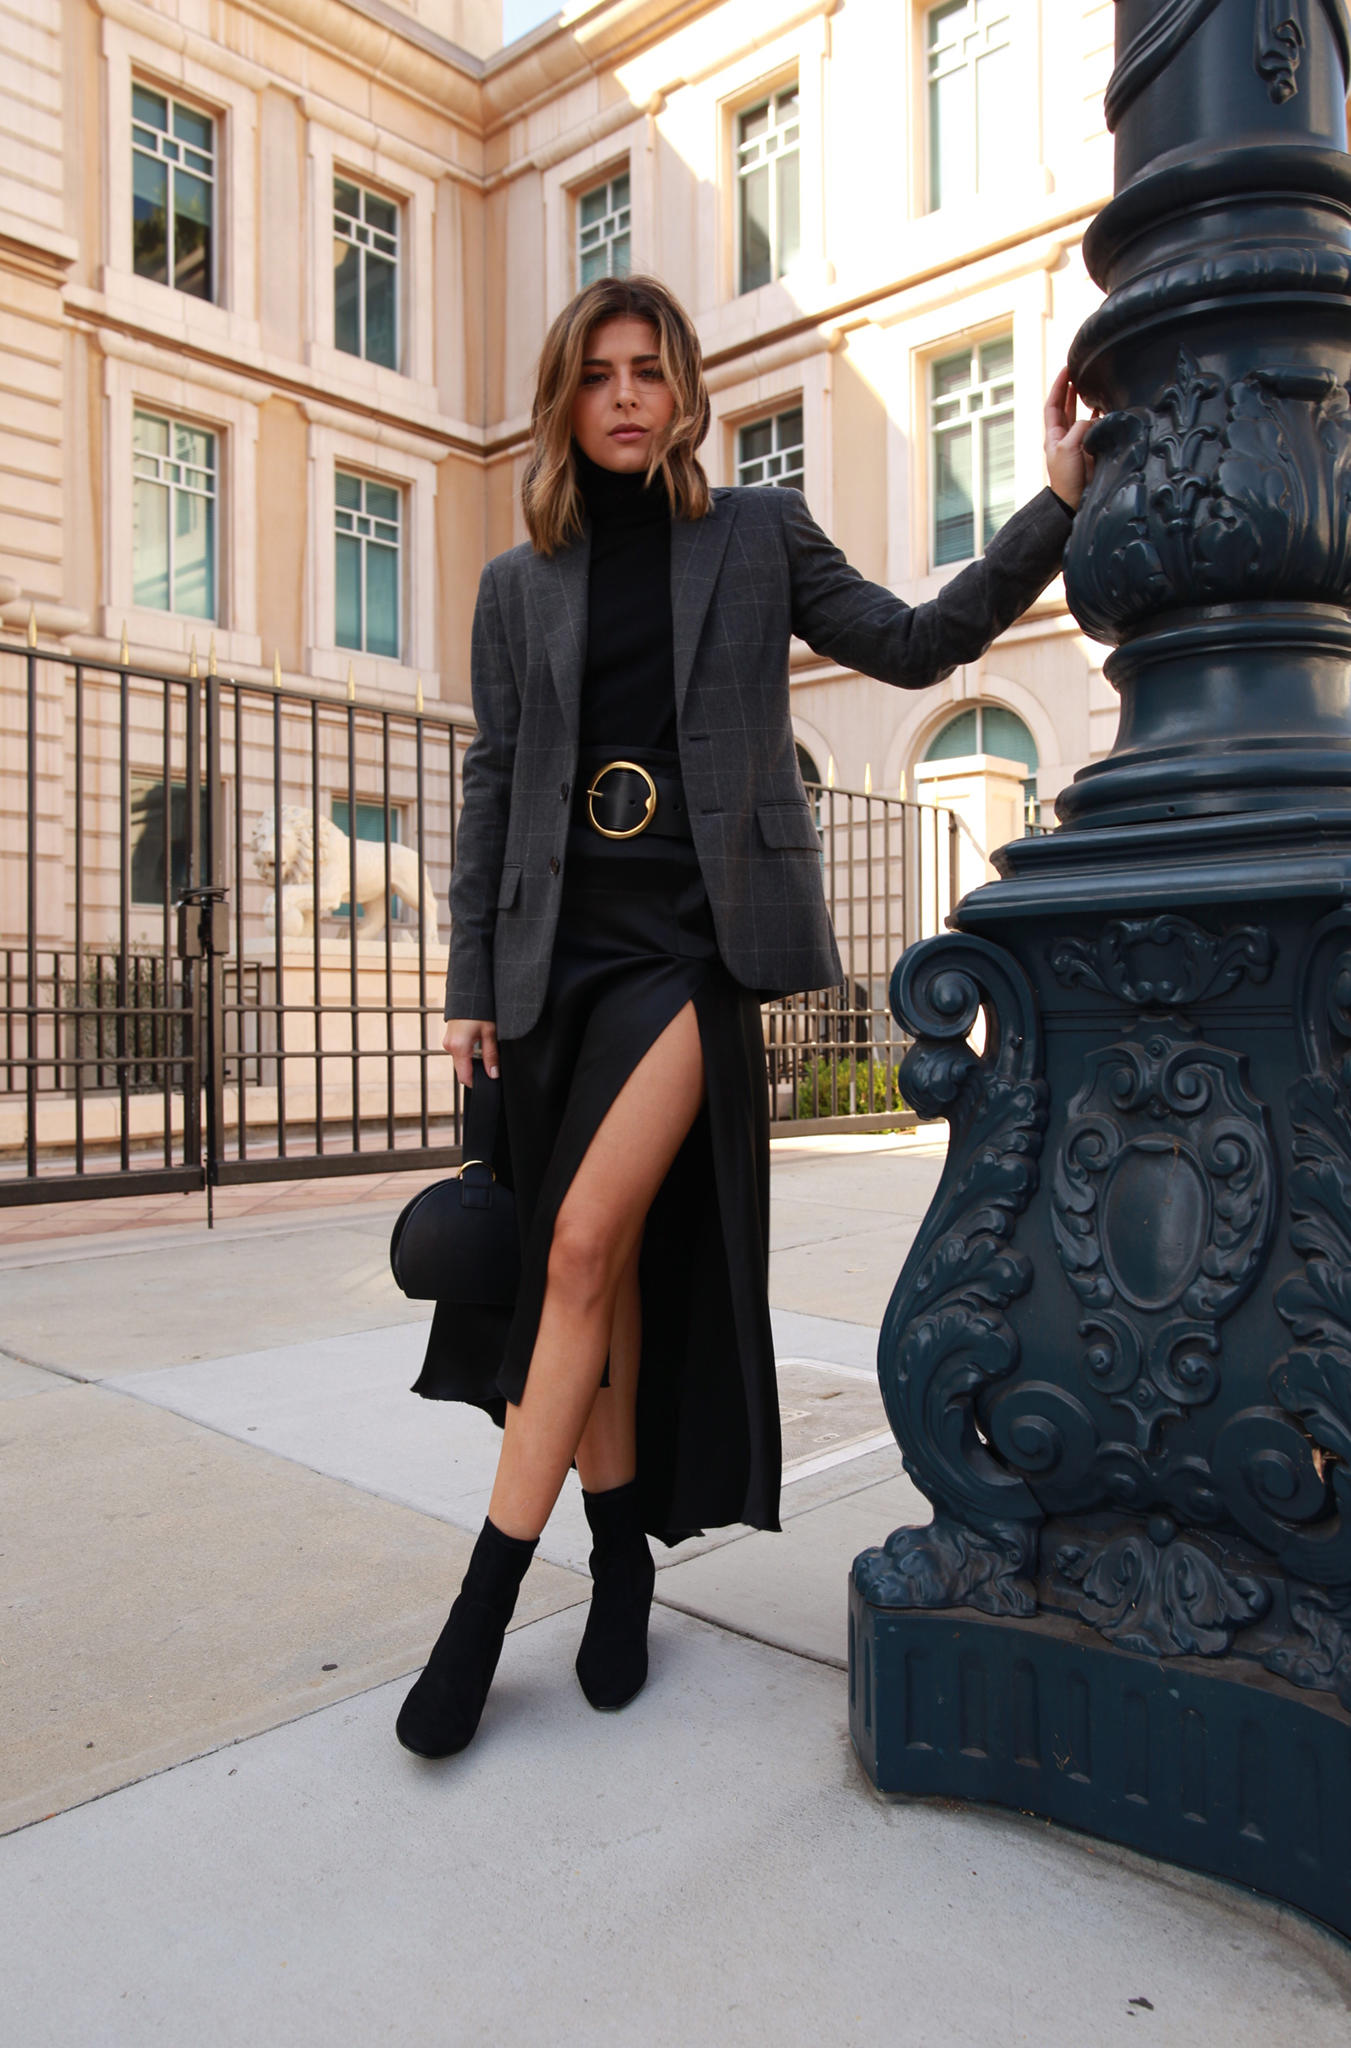 Chic Workwear Pieces You need for Fall by Pam Hetlinger | TheGirlFromPanama.com | Plaid Blazer, Turtleneck Sweater, Classic American Style, Ralph Laurent office wear, Black Sock booties, slit midi skirt